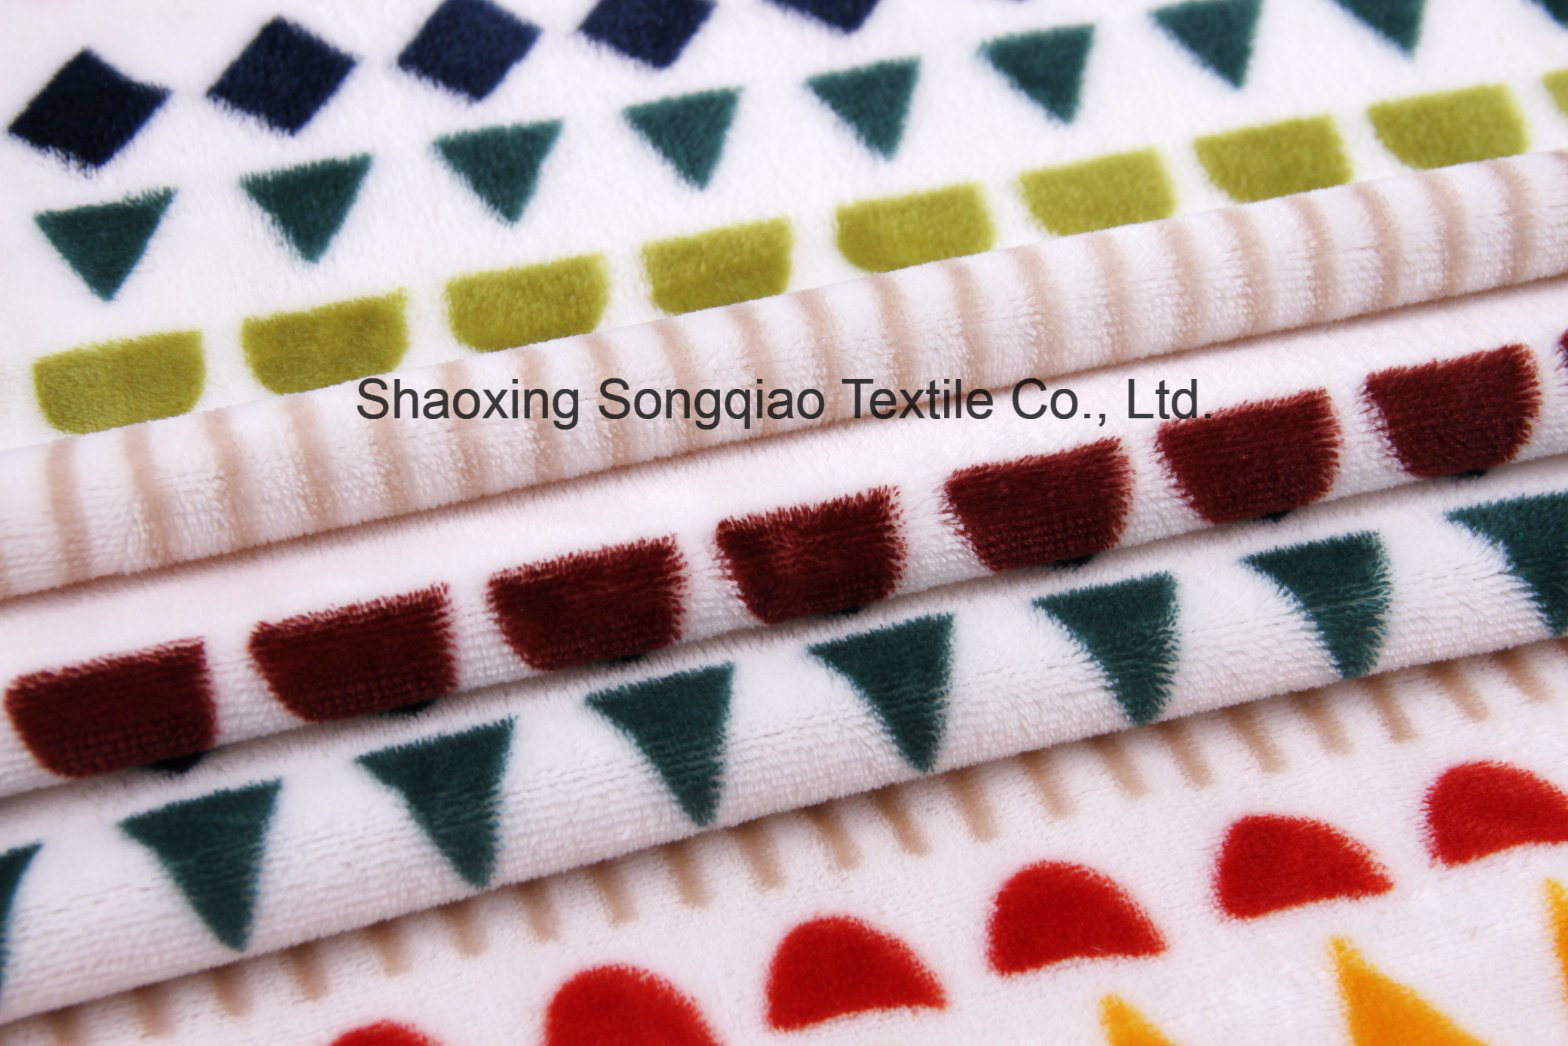 Printed Polyester Flannel/Coral Fleece Fabric - 16050-4 1#